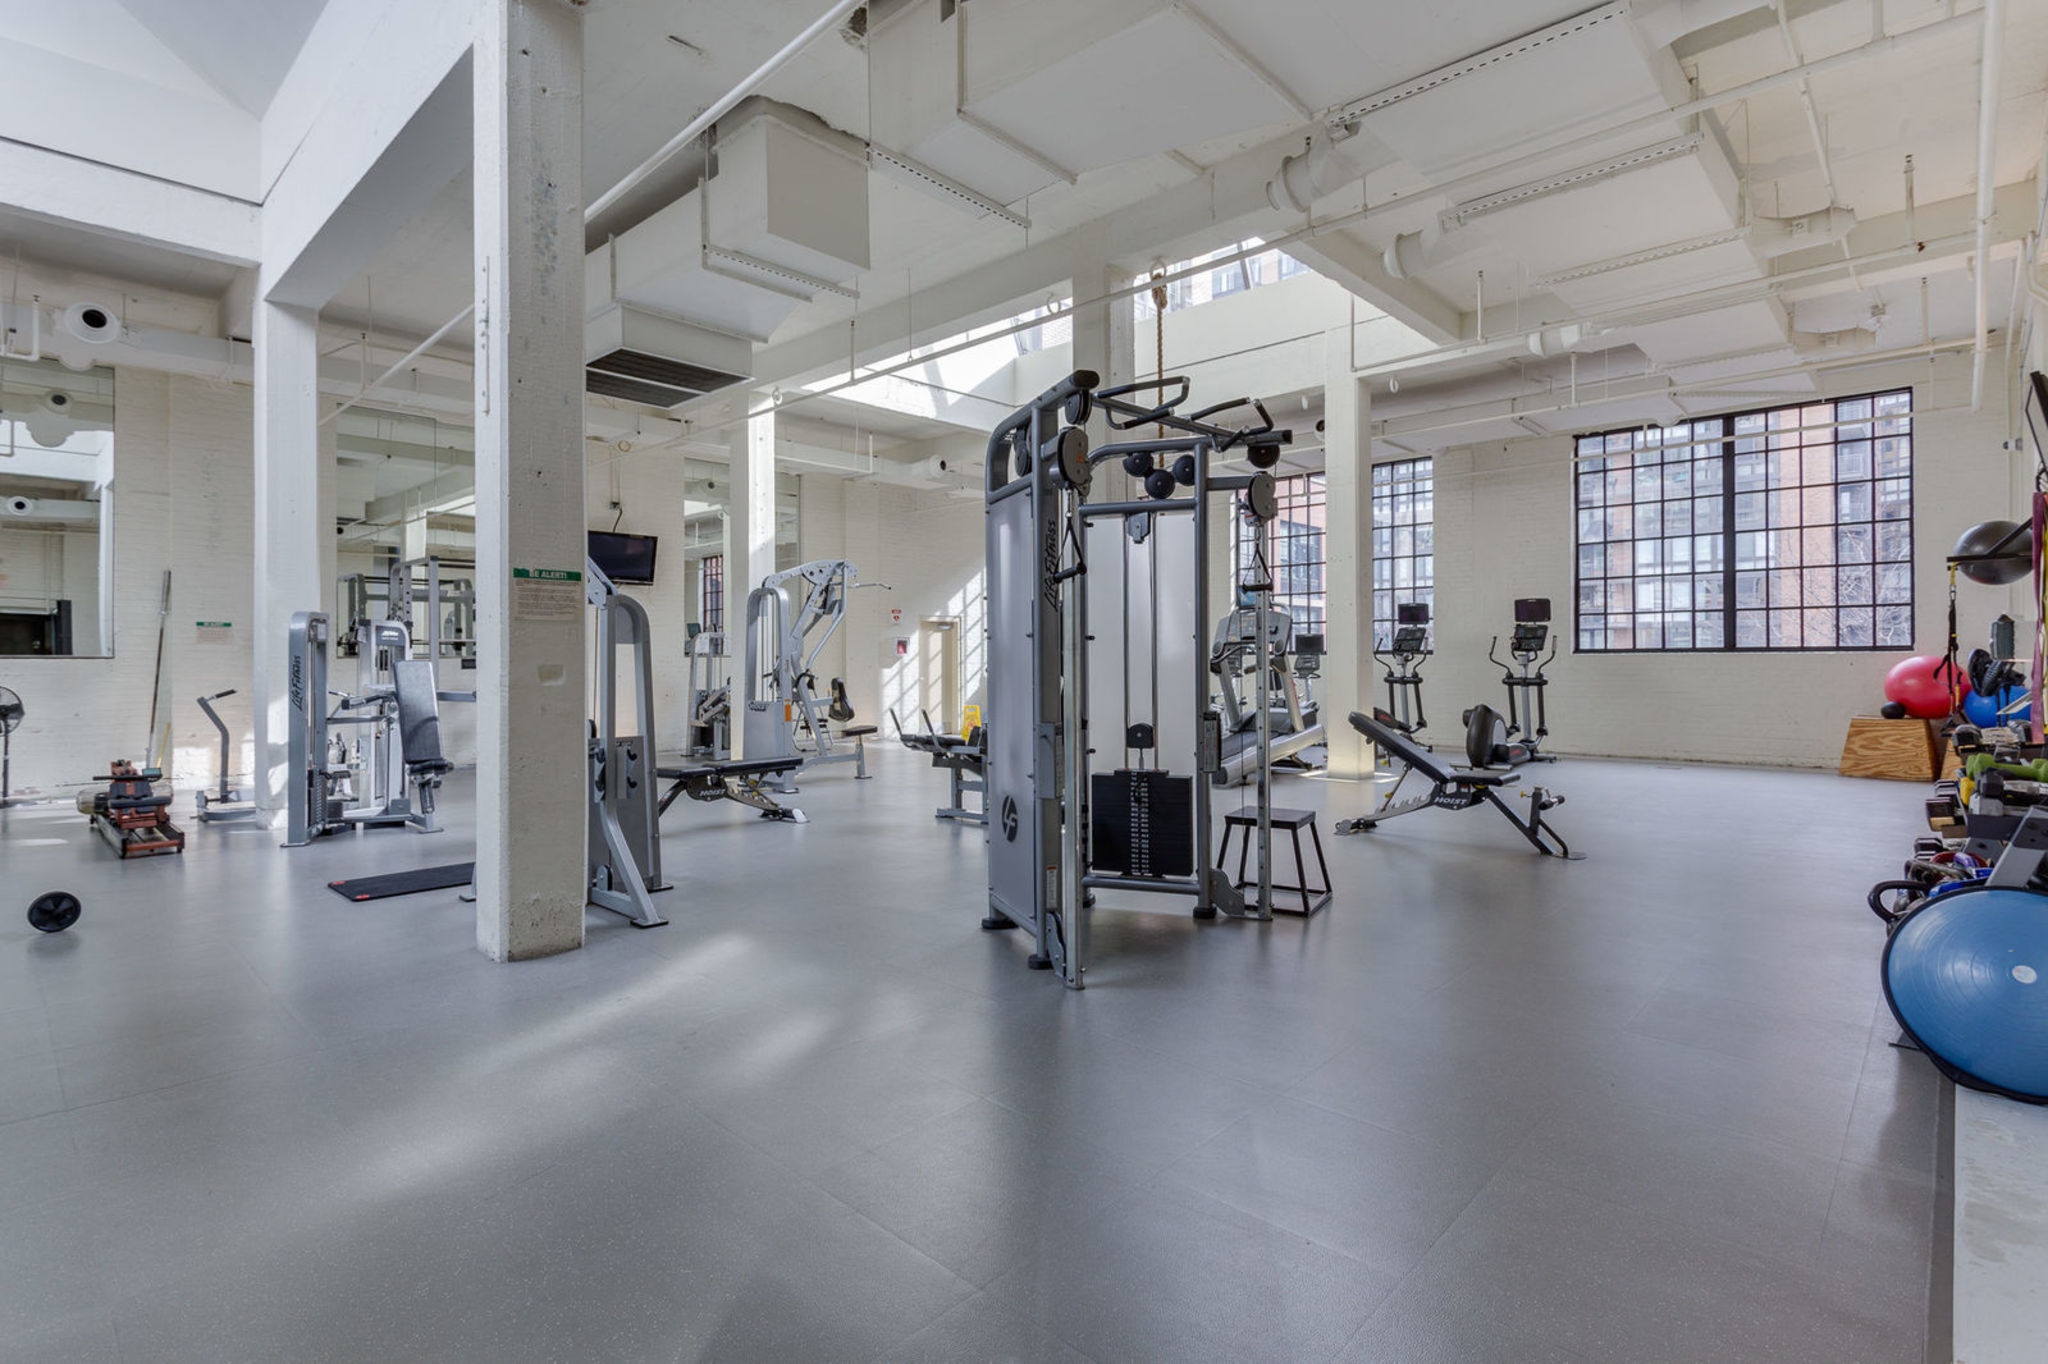 033_437_new_york_ave_nw_903-print-050-31-building_exercise_room-2048x1365-300dpi